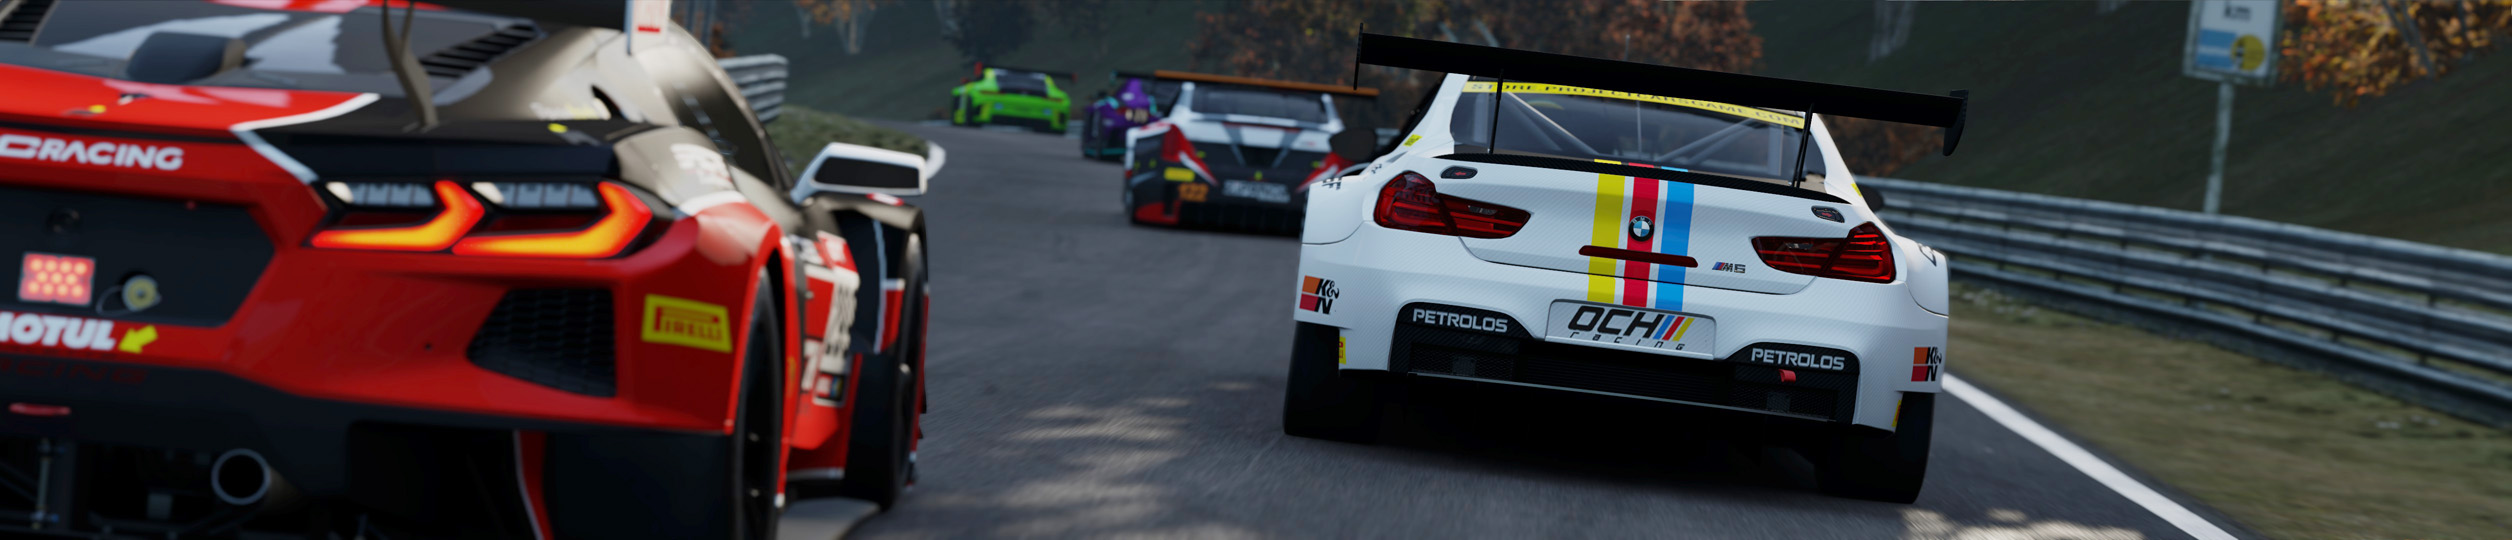 3 PROJECT CARS 3 GT3 at NORDSCHLEIFE crop copy.jpg